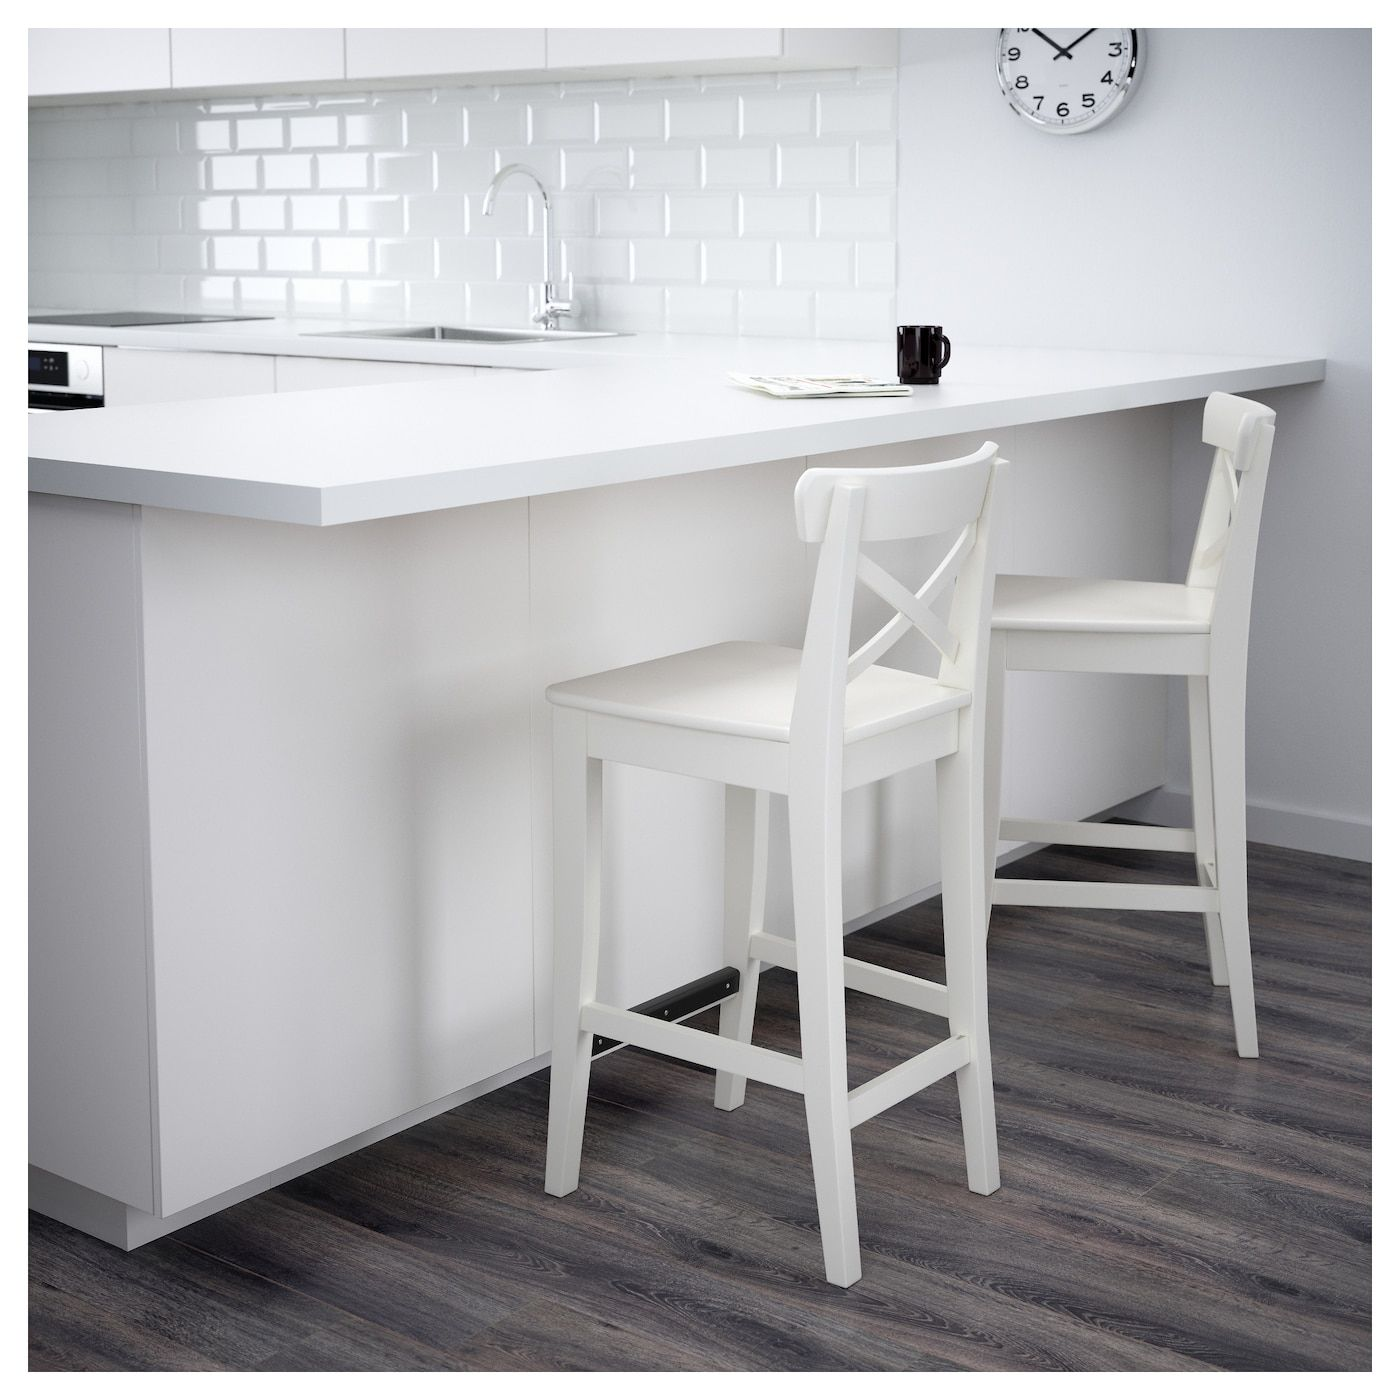 Ingolf Bar Stool With Backrest White 24 3 4 63 Cm Bar